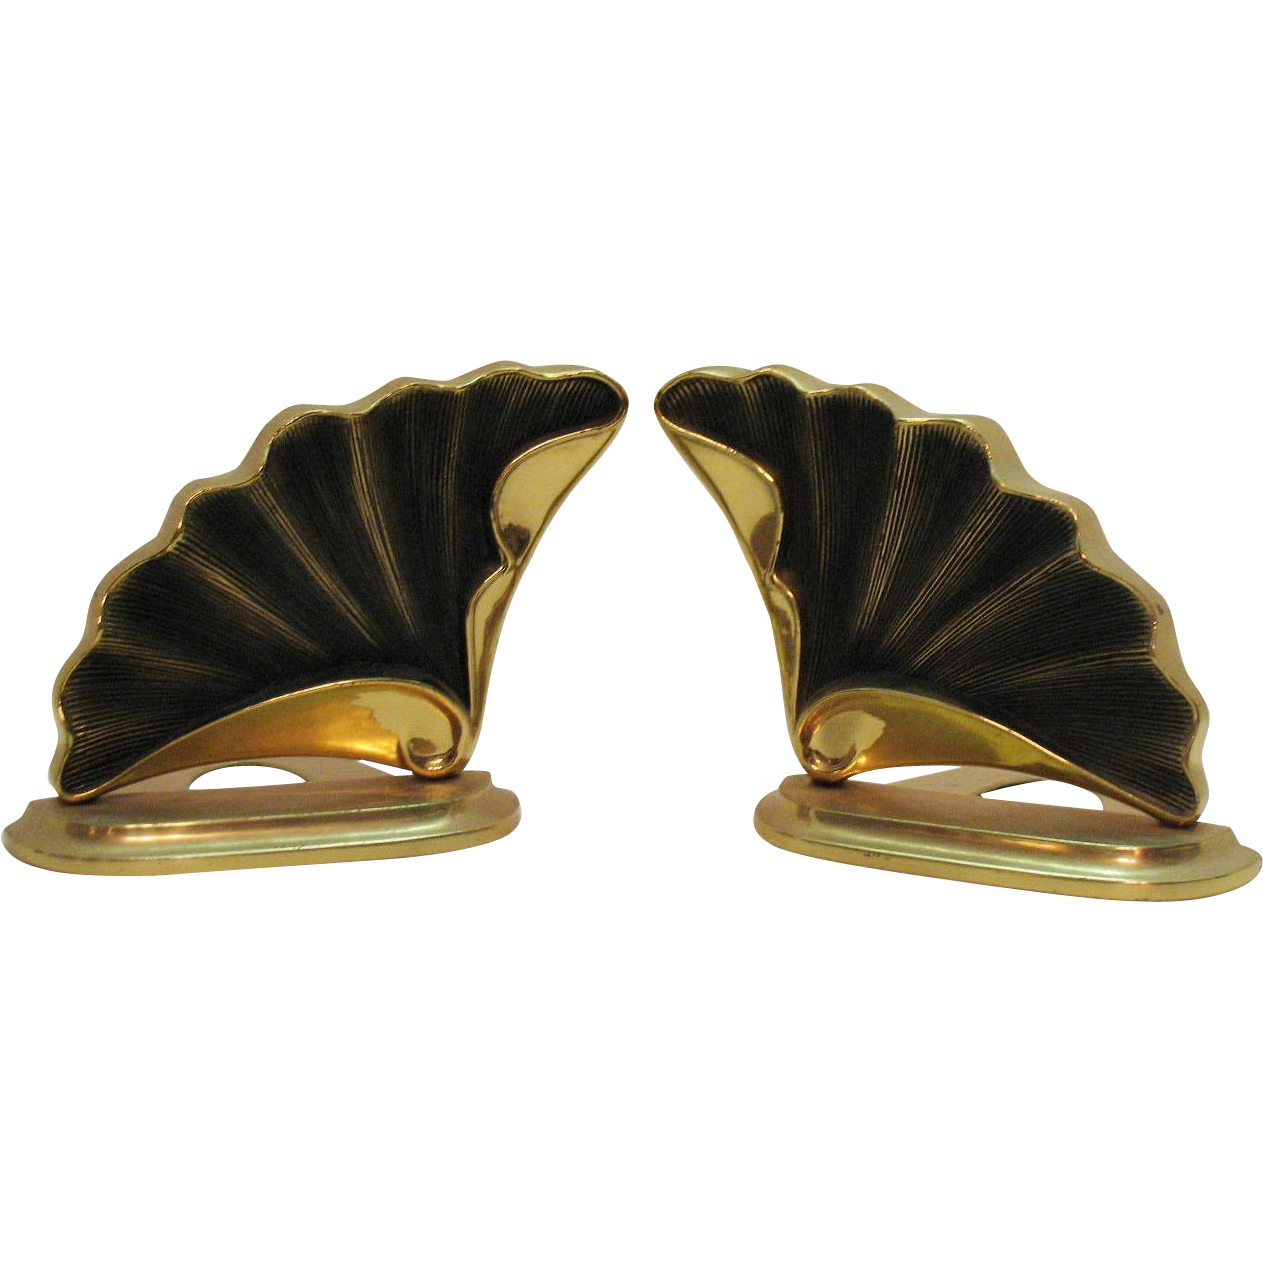 Vintage Brass Bookends Sea Shell Design Crowning Touch Collections 1970s Taiwan R.O.C. Good Condition